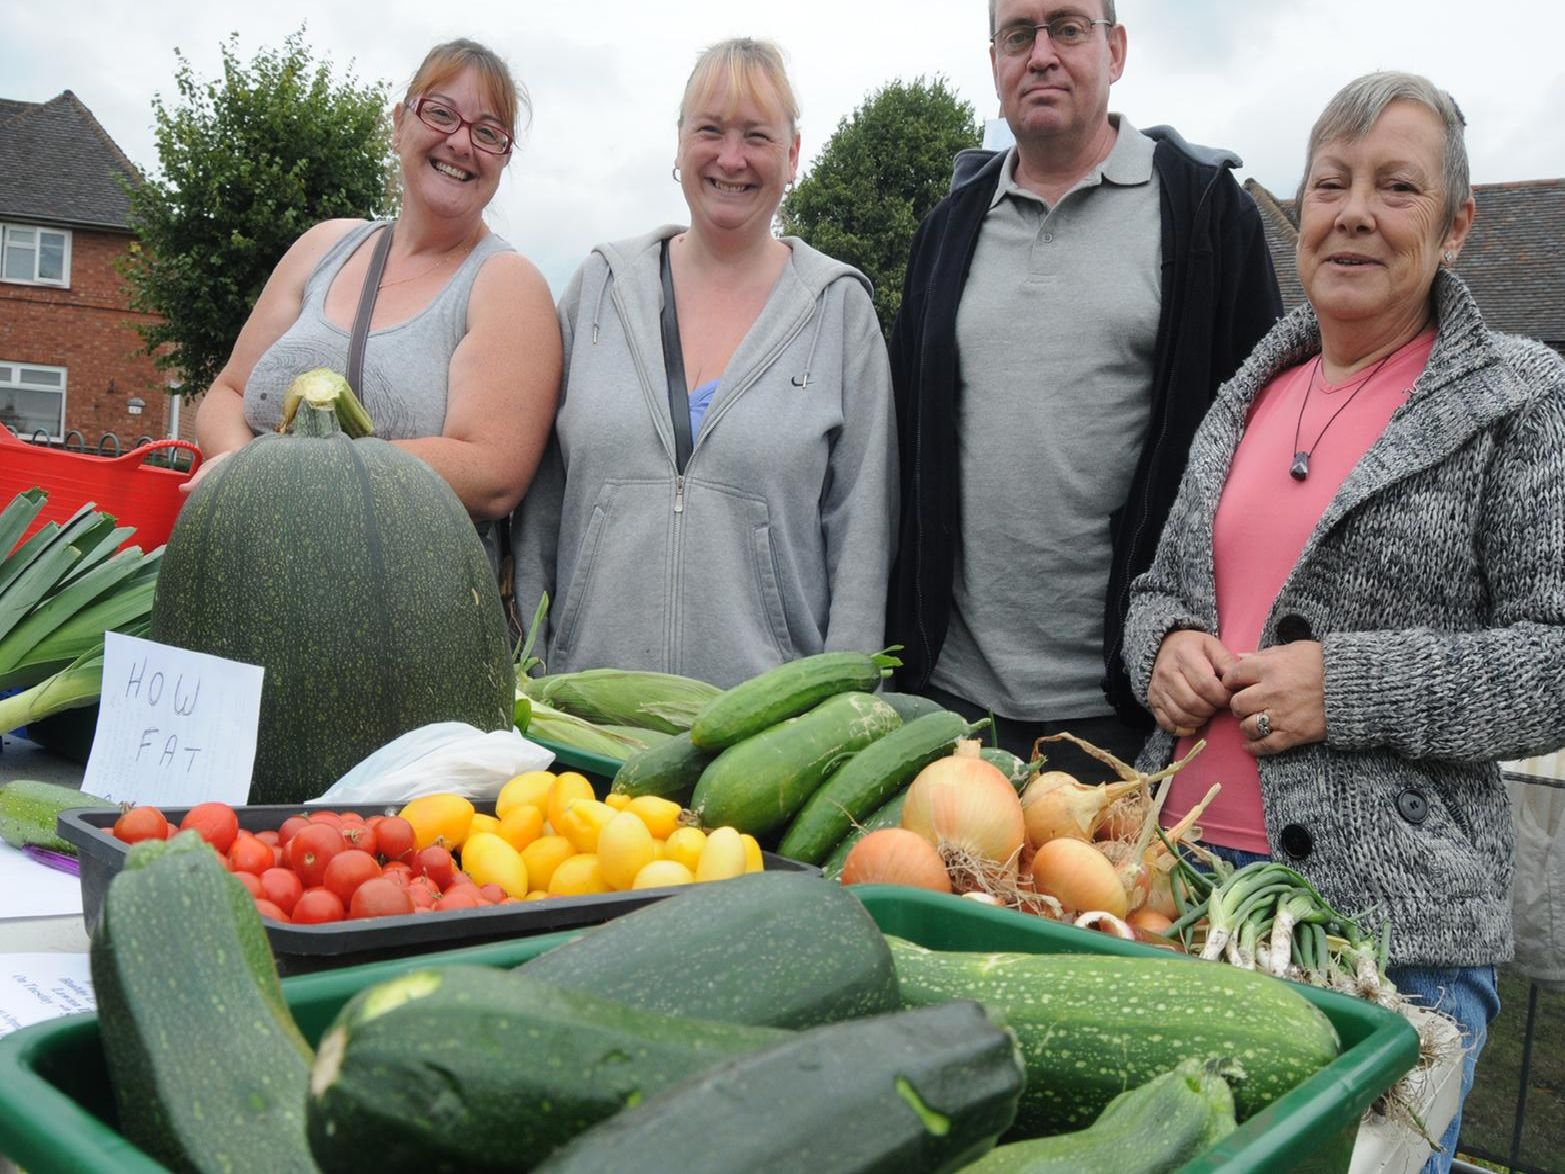 2010: Members of the Bulwell Community Garden pictured at the Bulwell Hall Estate community fun day. Did you go to this event?